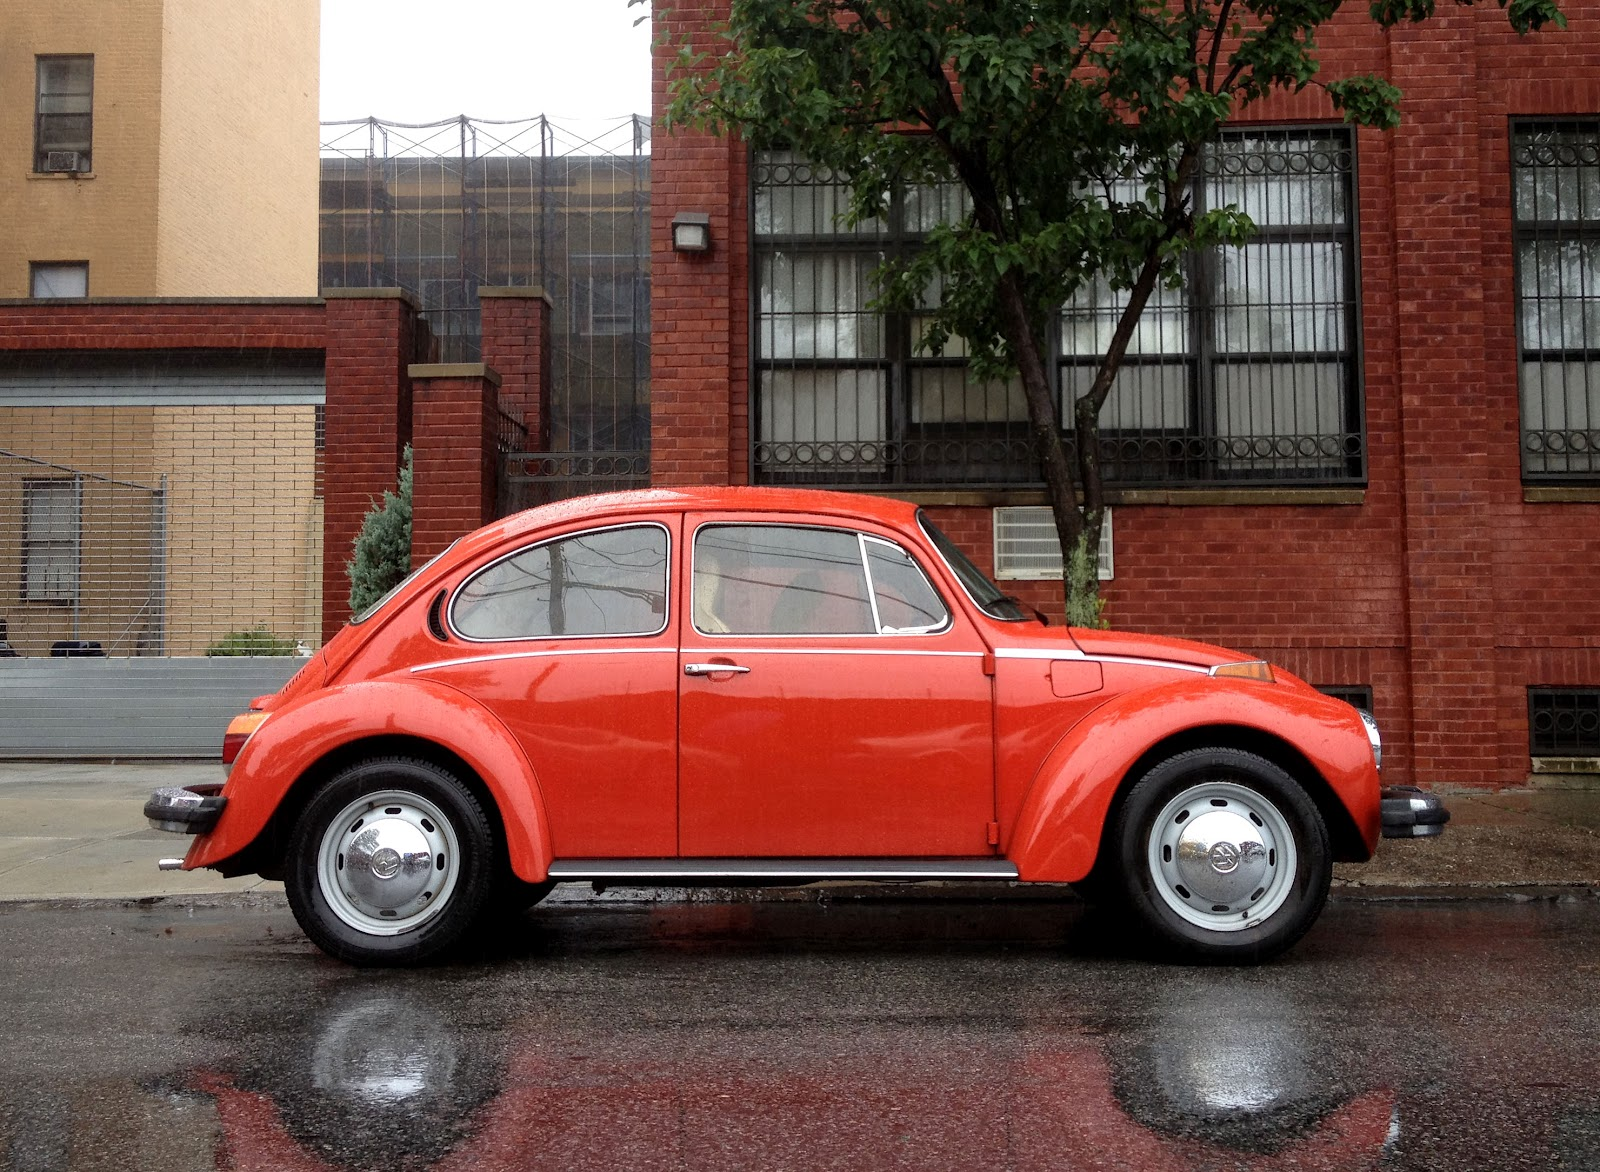 CSCB Home: 1974 Volkswagen Super Beetle